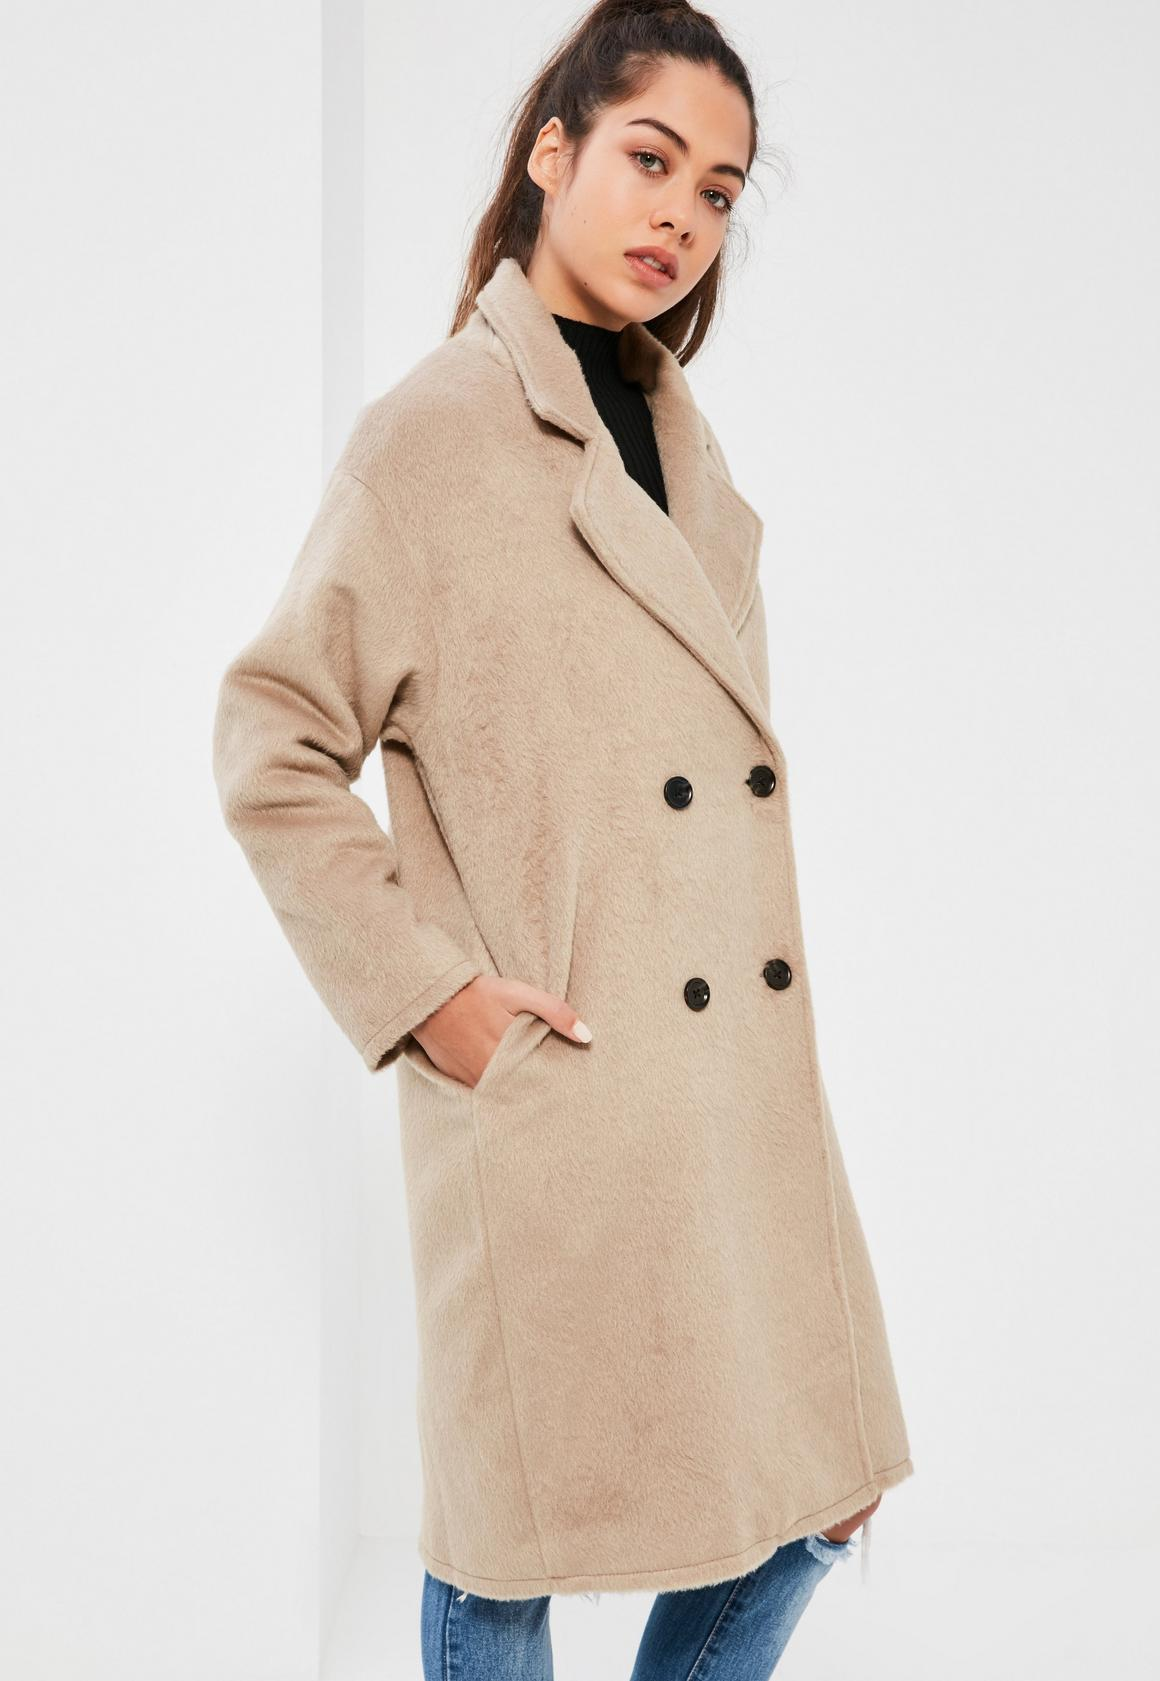 Petite Camel Cocoon Double Breasted Faux Wool Coat | Missguided